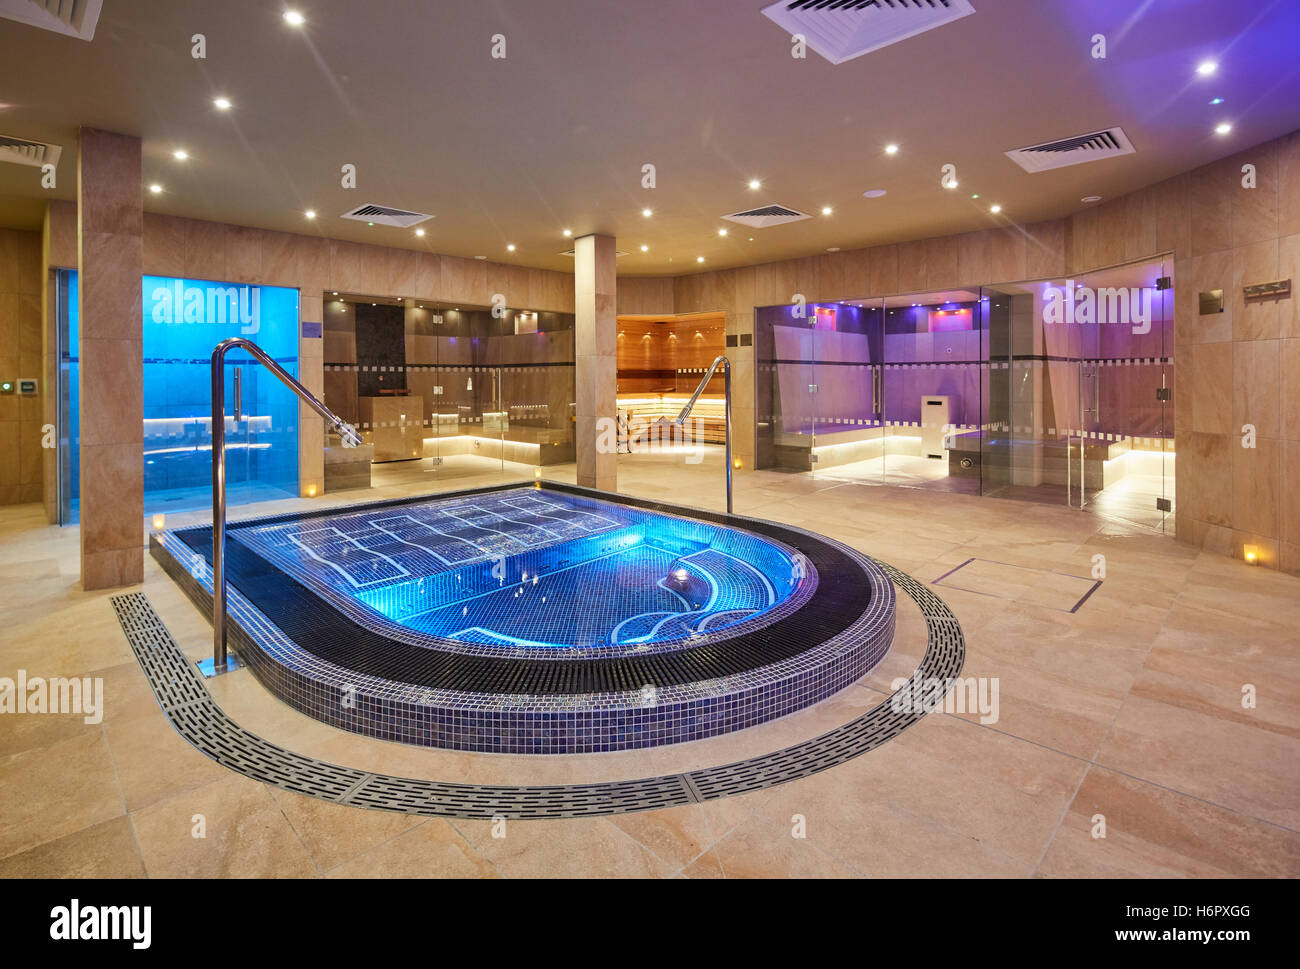 Spa Pool interior modern posh clean Inside Spa Nelson sauna space ...